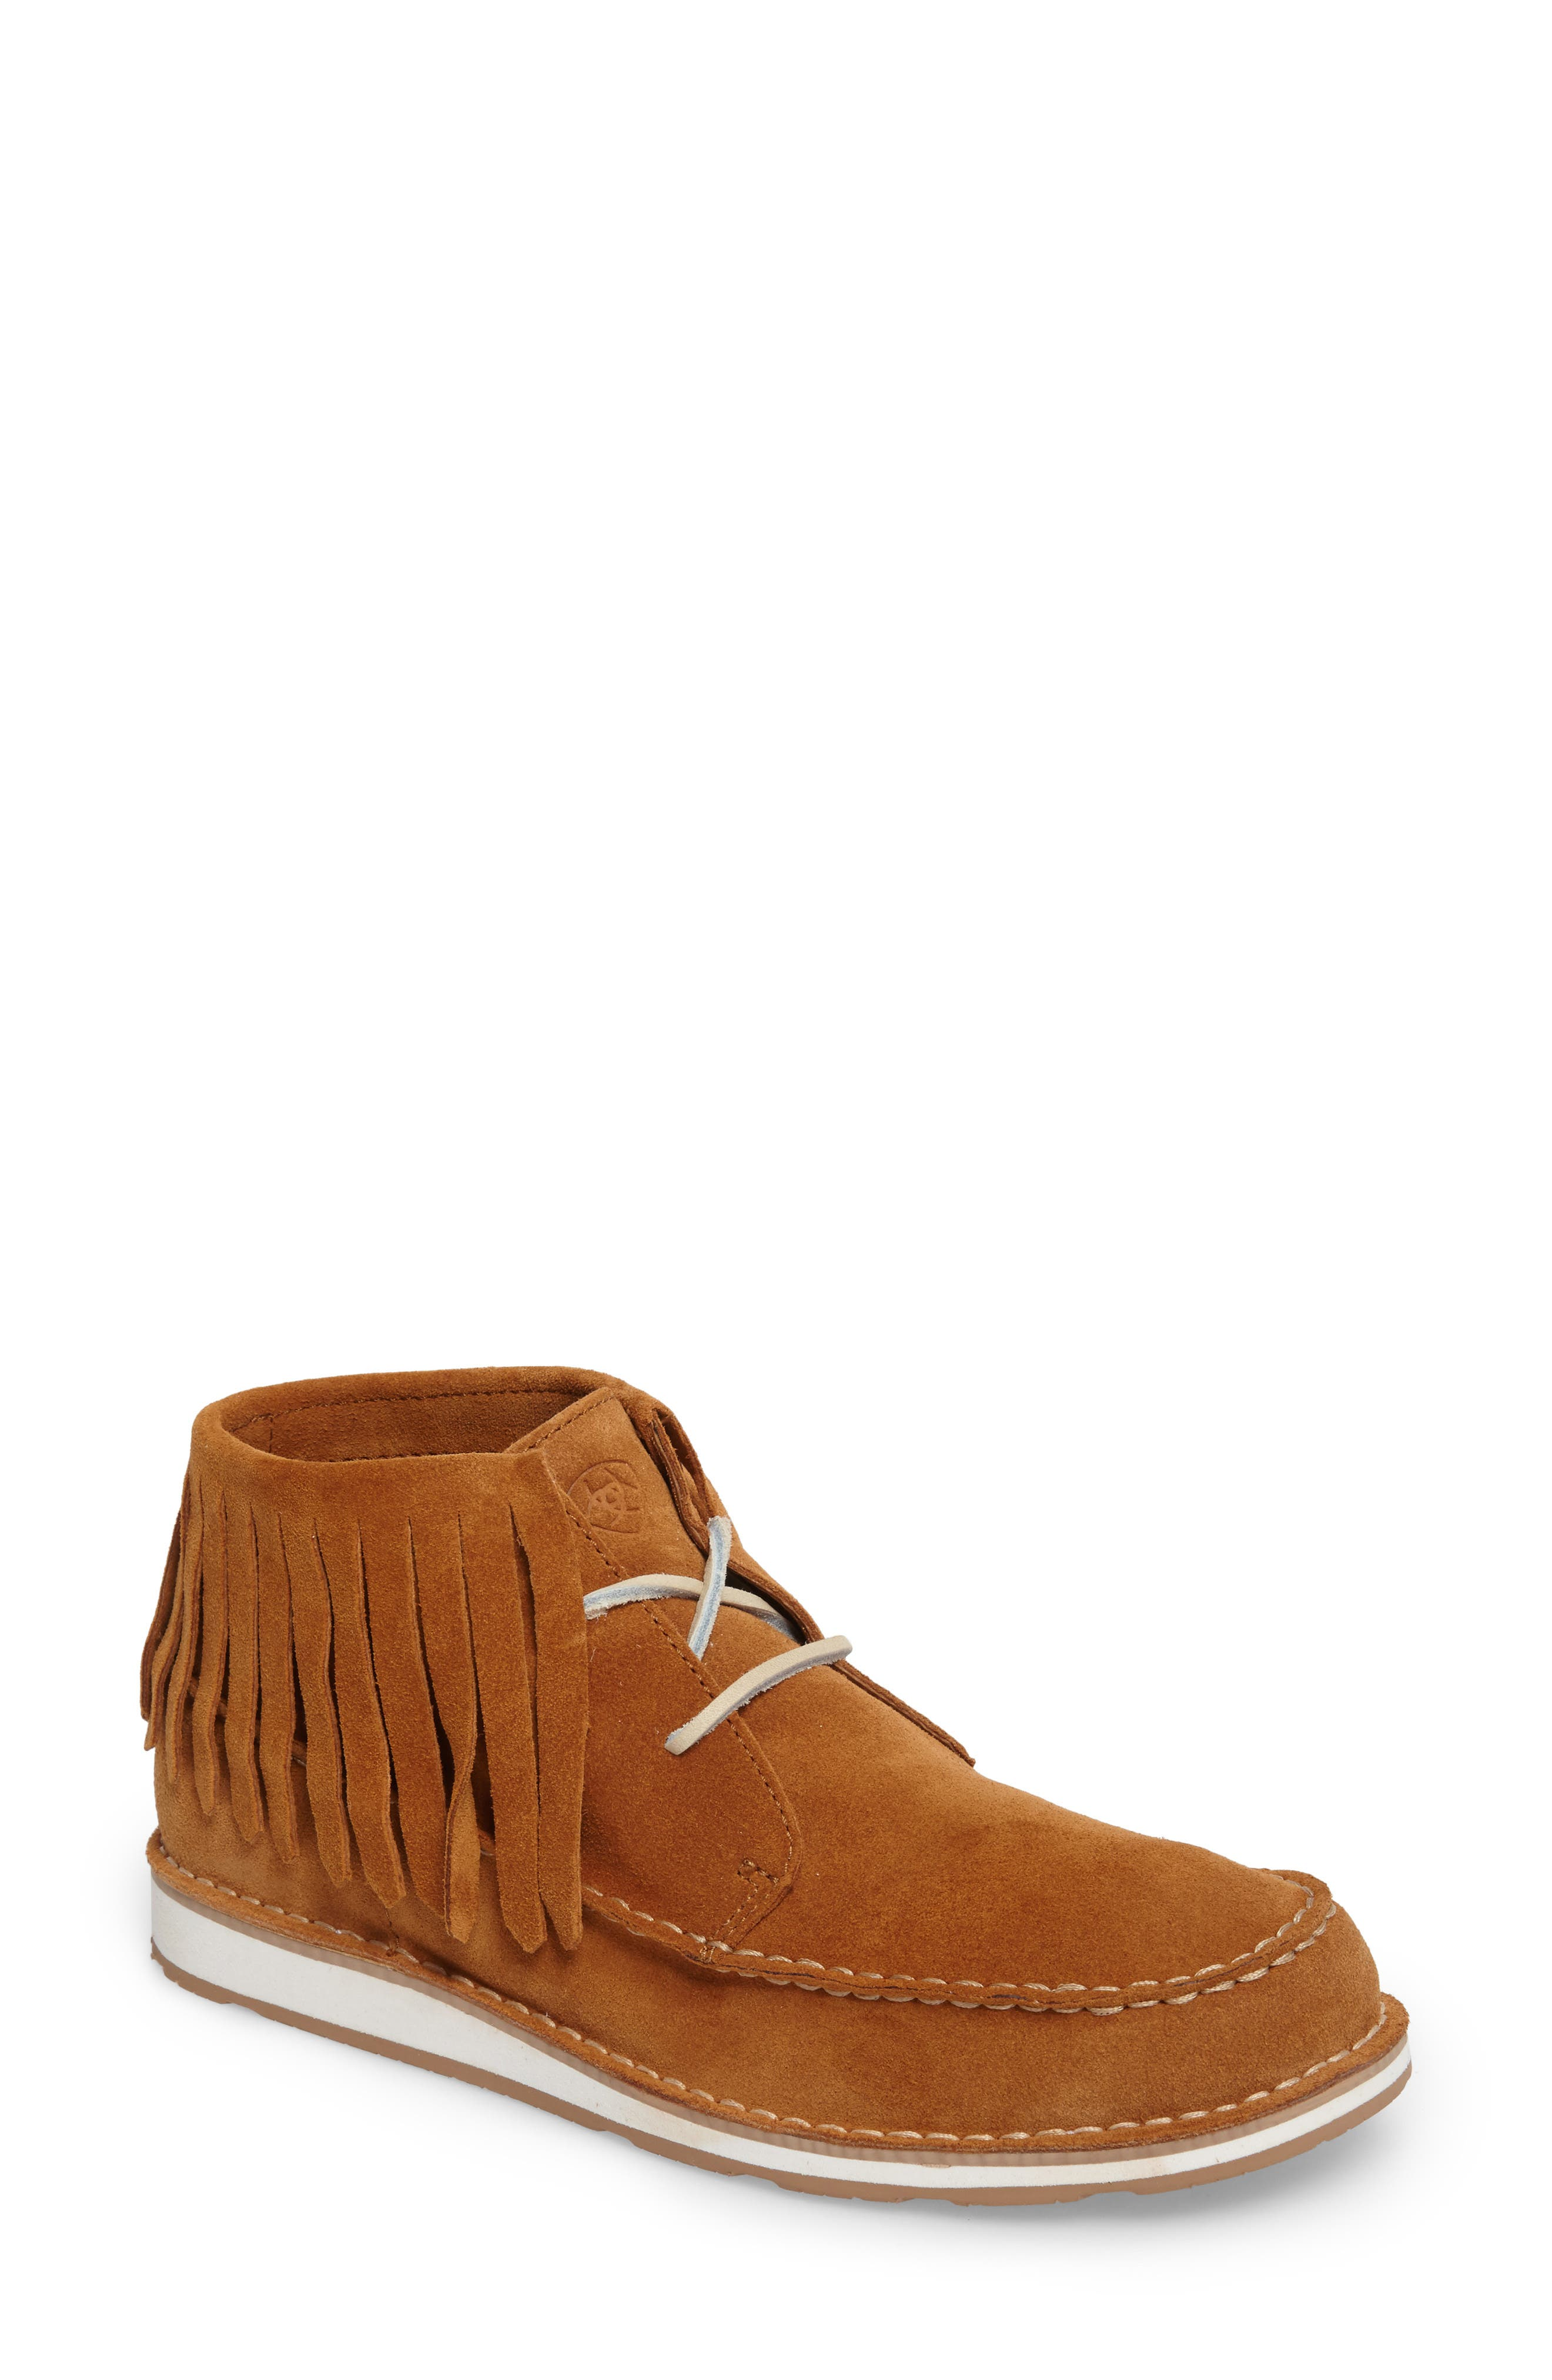 Main Image - Ariat Cruiser Fringe Chukka Boot (Women)